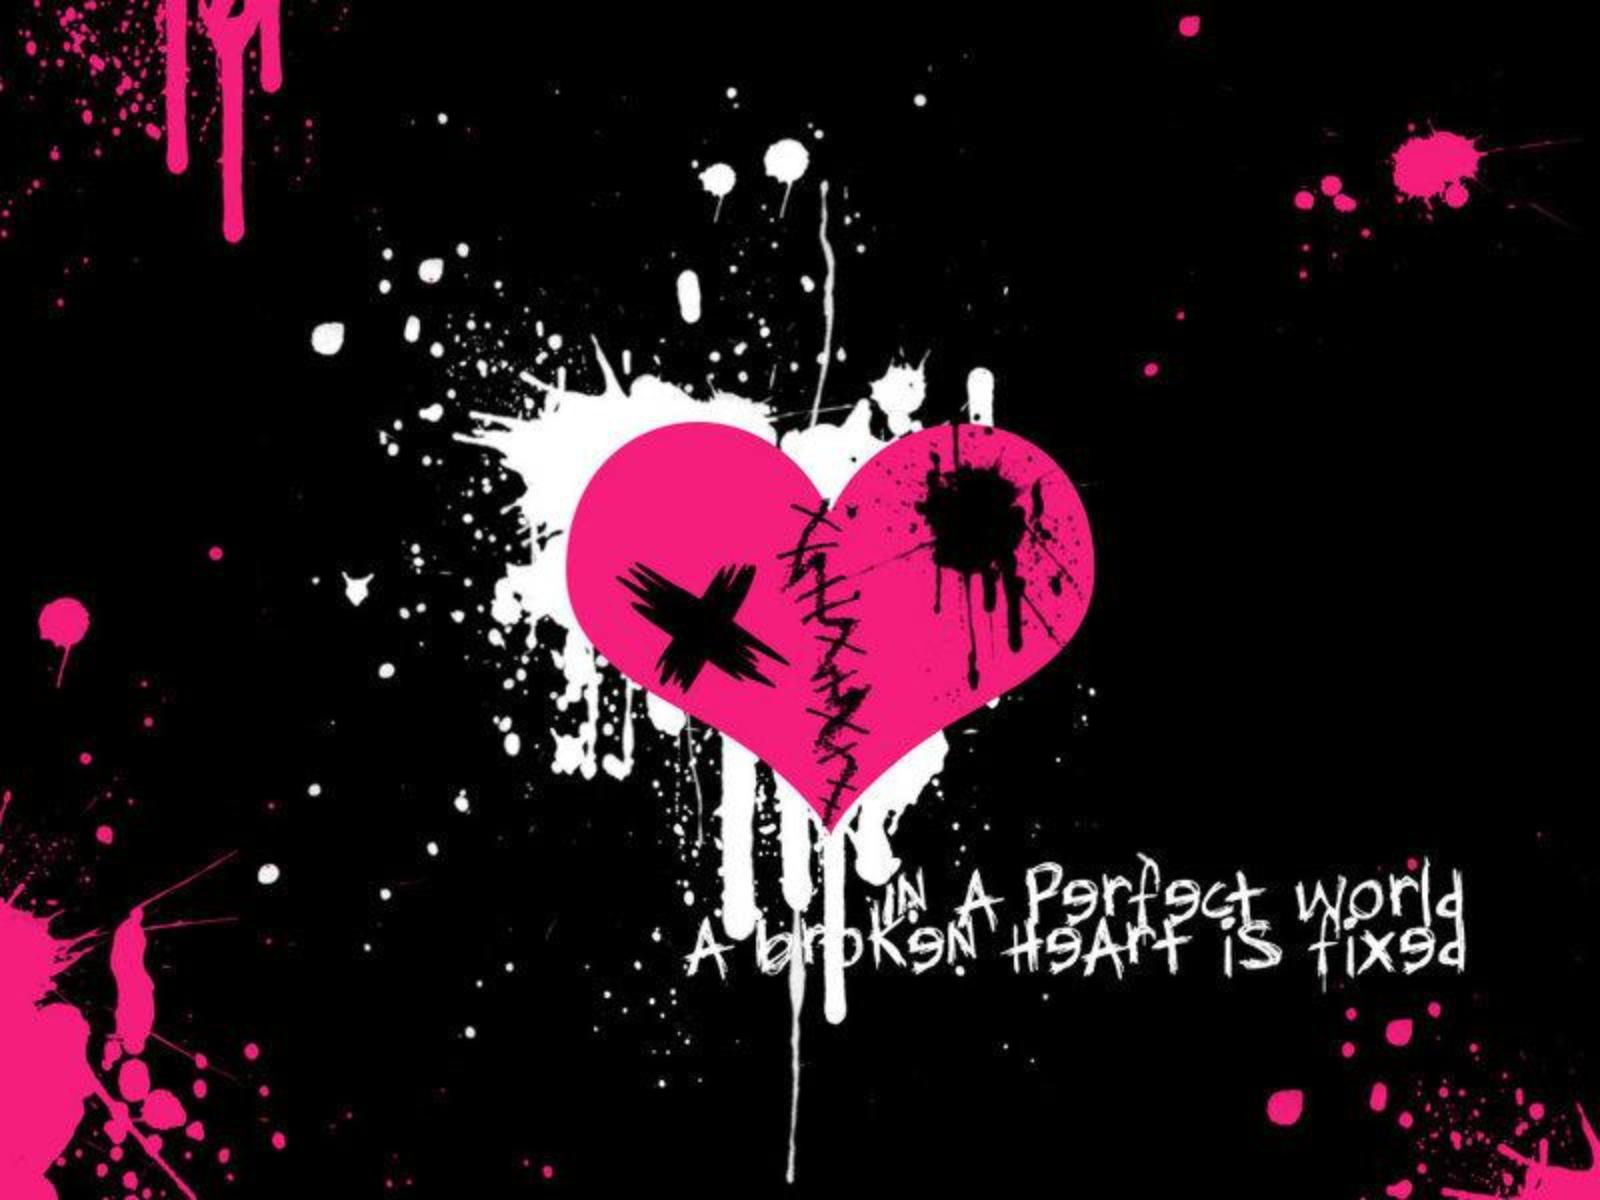 heart wallpapers emo - HD Desktop Wallpapers 4k HD